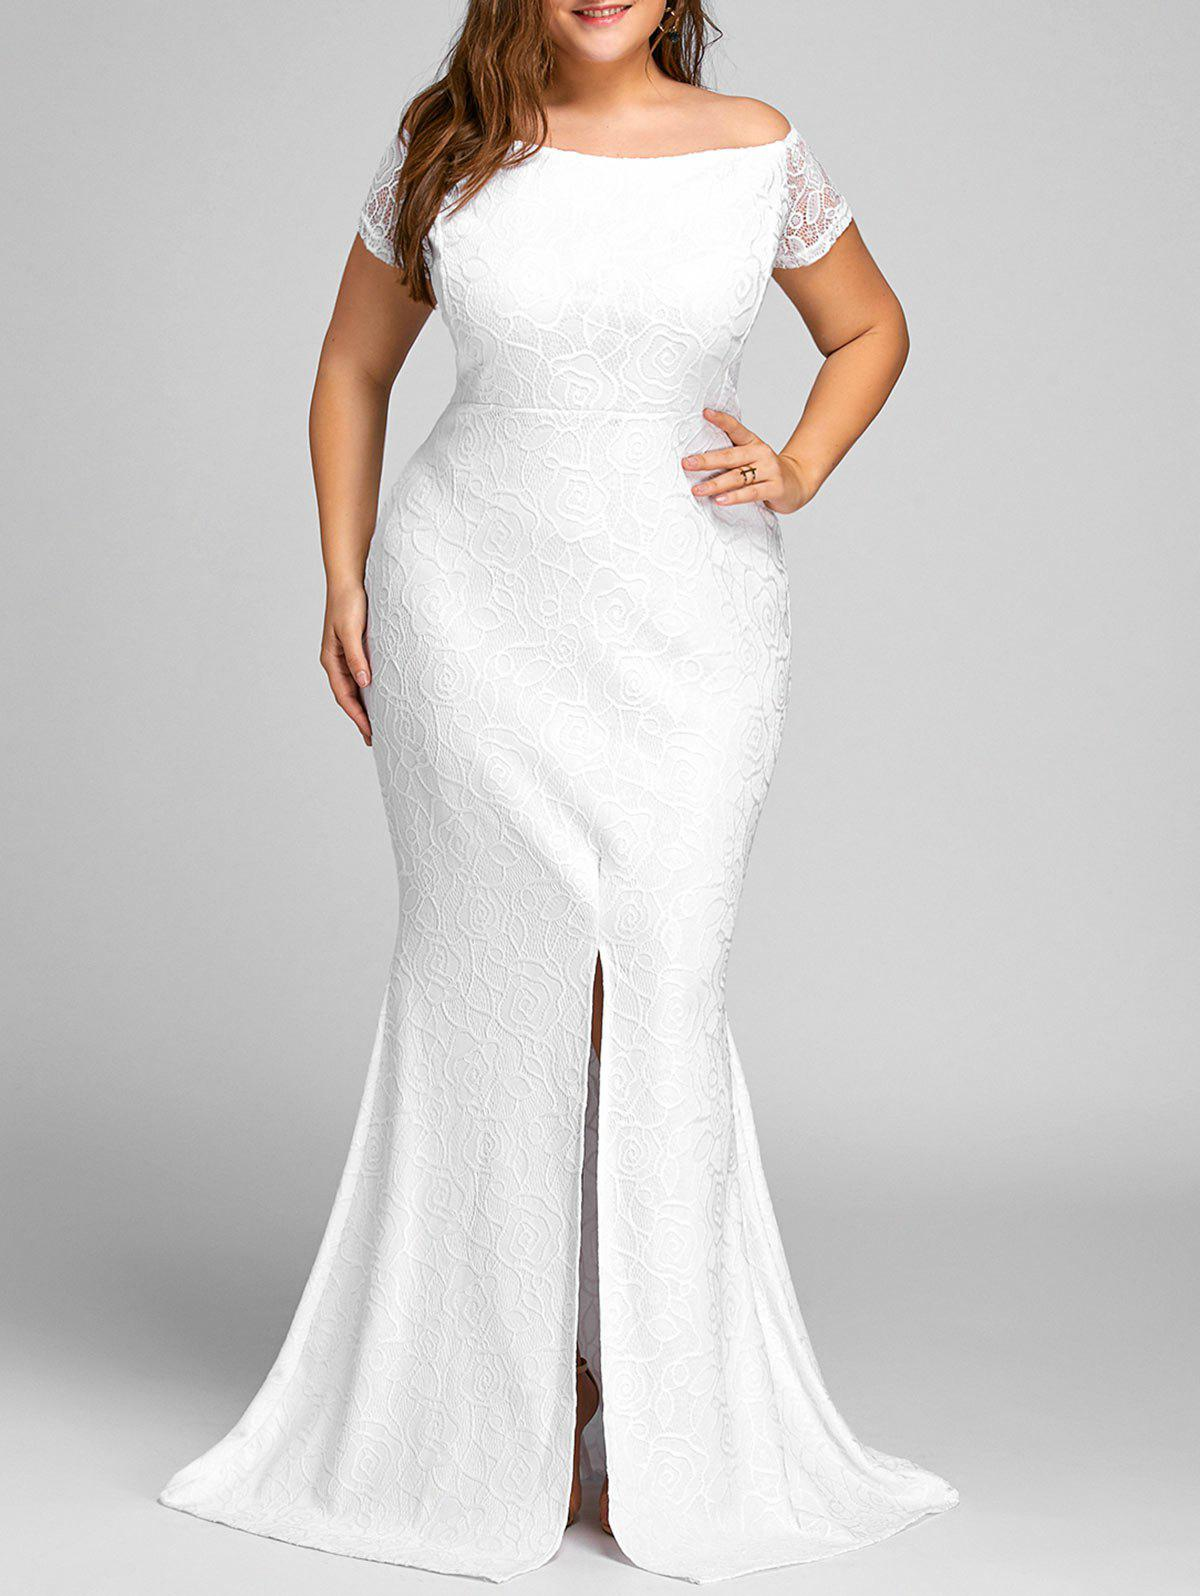 a2f7f7457734 2019 OFF The Shoulder Slit Lace Plus Size Dress